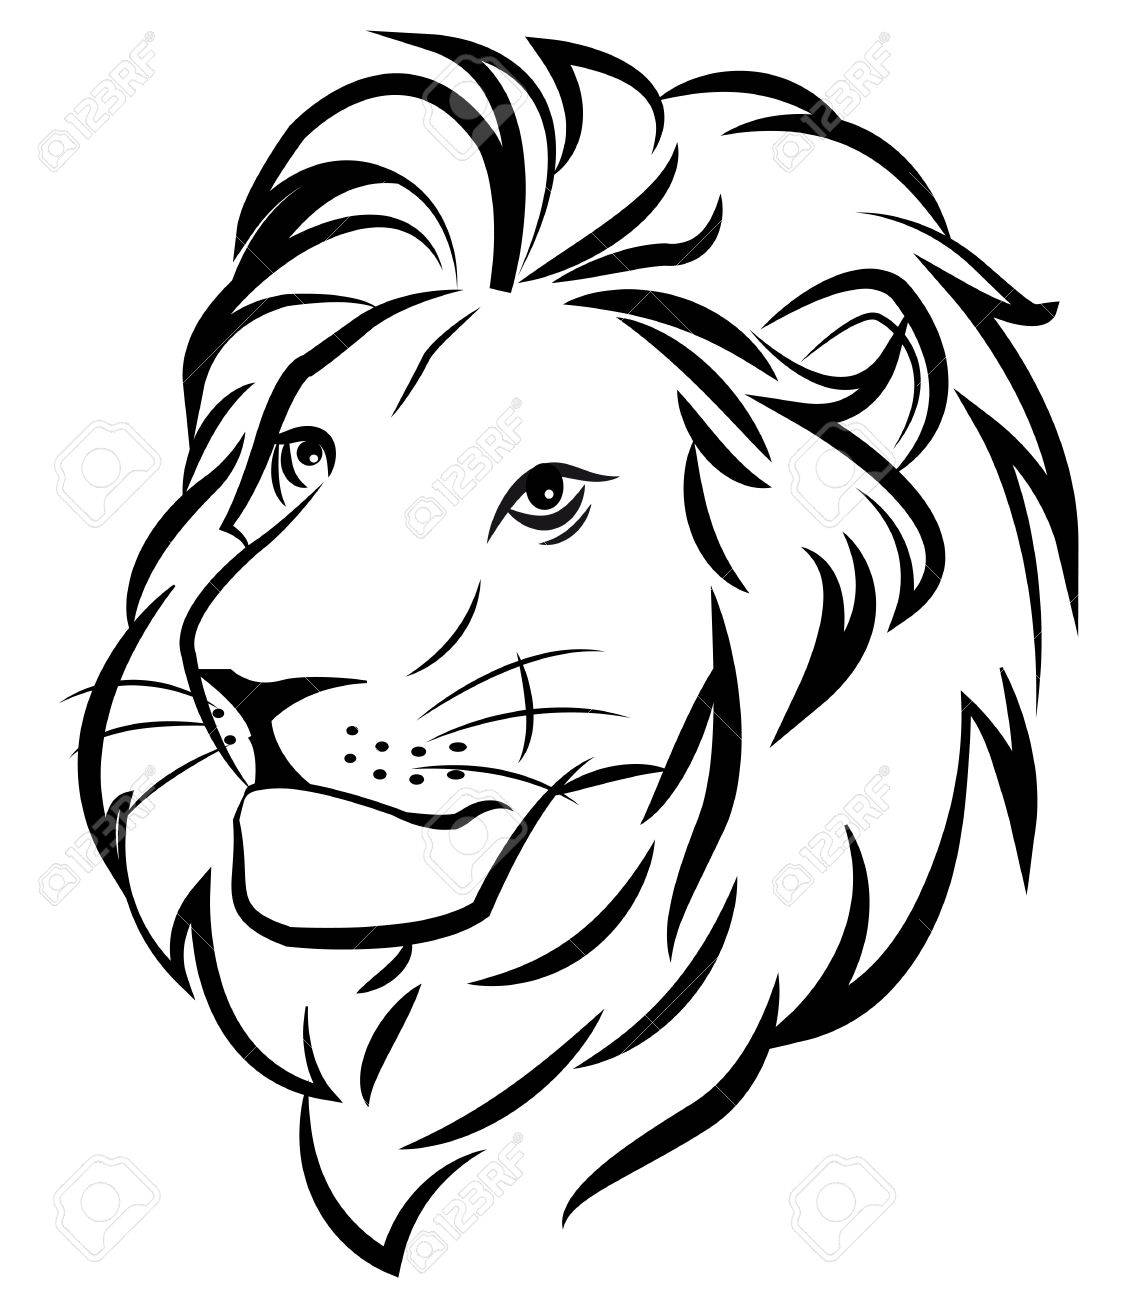 hight resolution of 1129x1300 lion royalty free cliparts vectors and stock illustration image